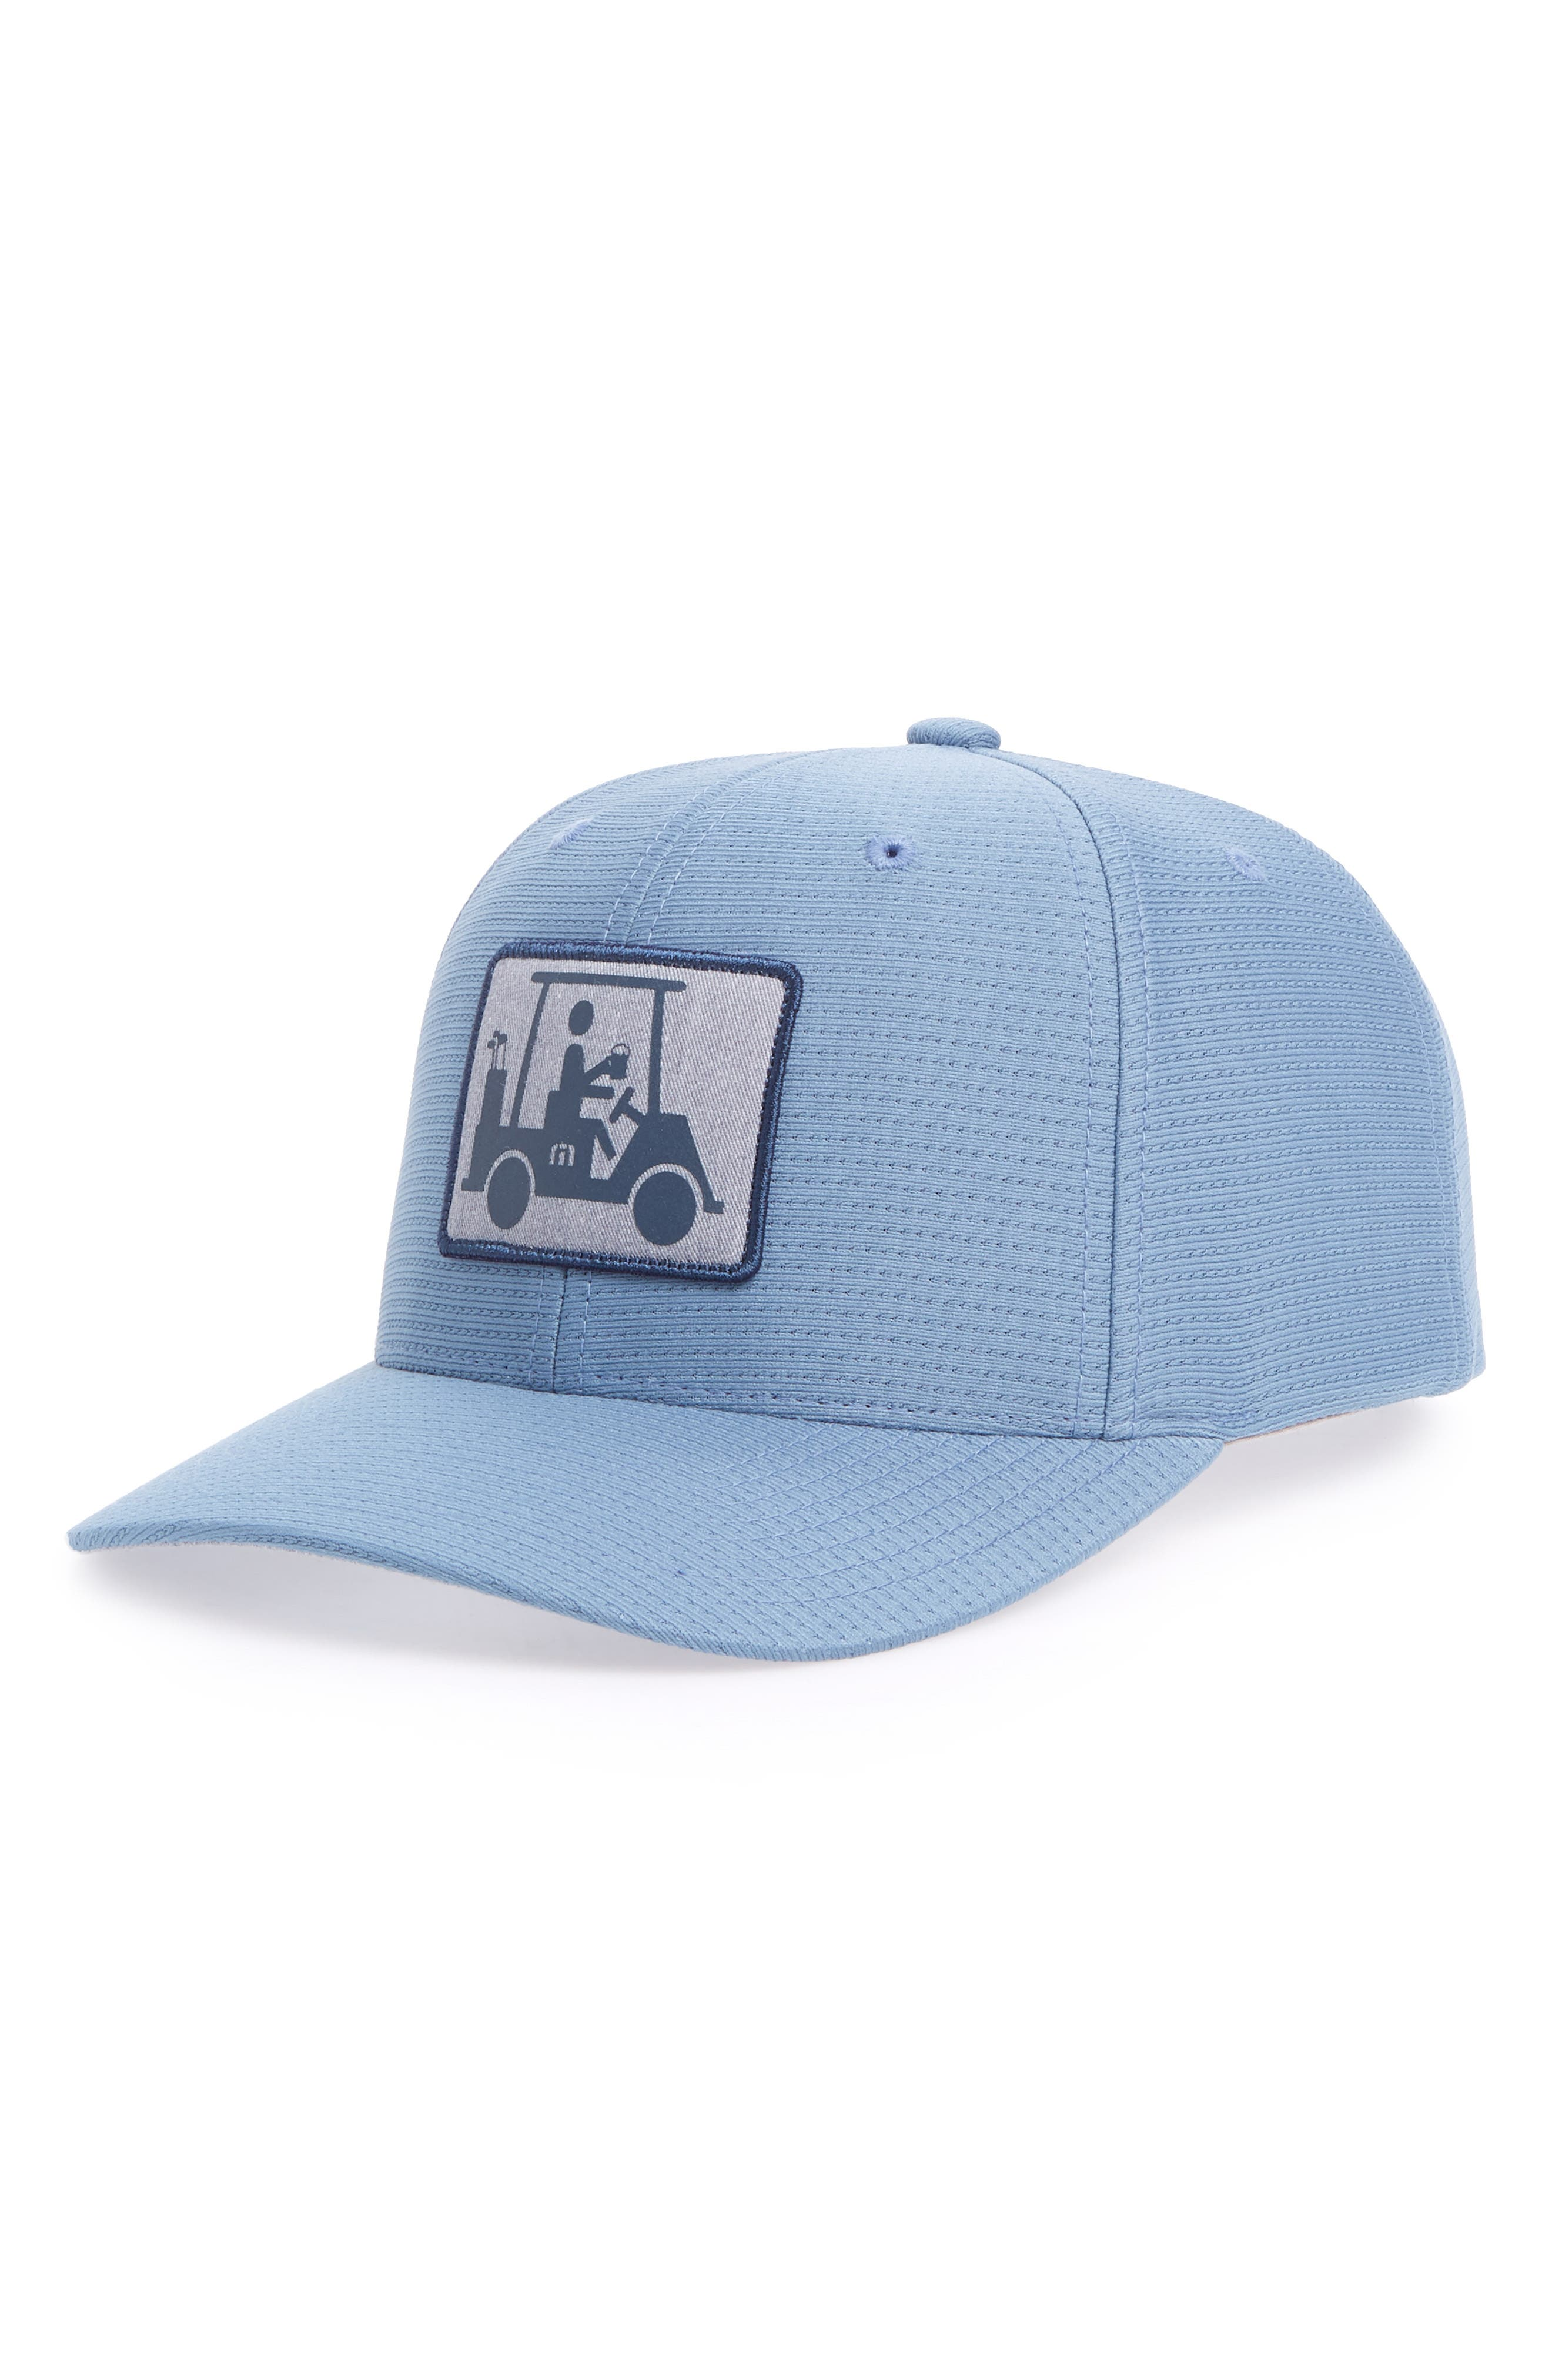 Coming in Hot Snapback Cap,                             Main thumbnail 1, color,                             BLUESTONE